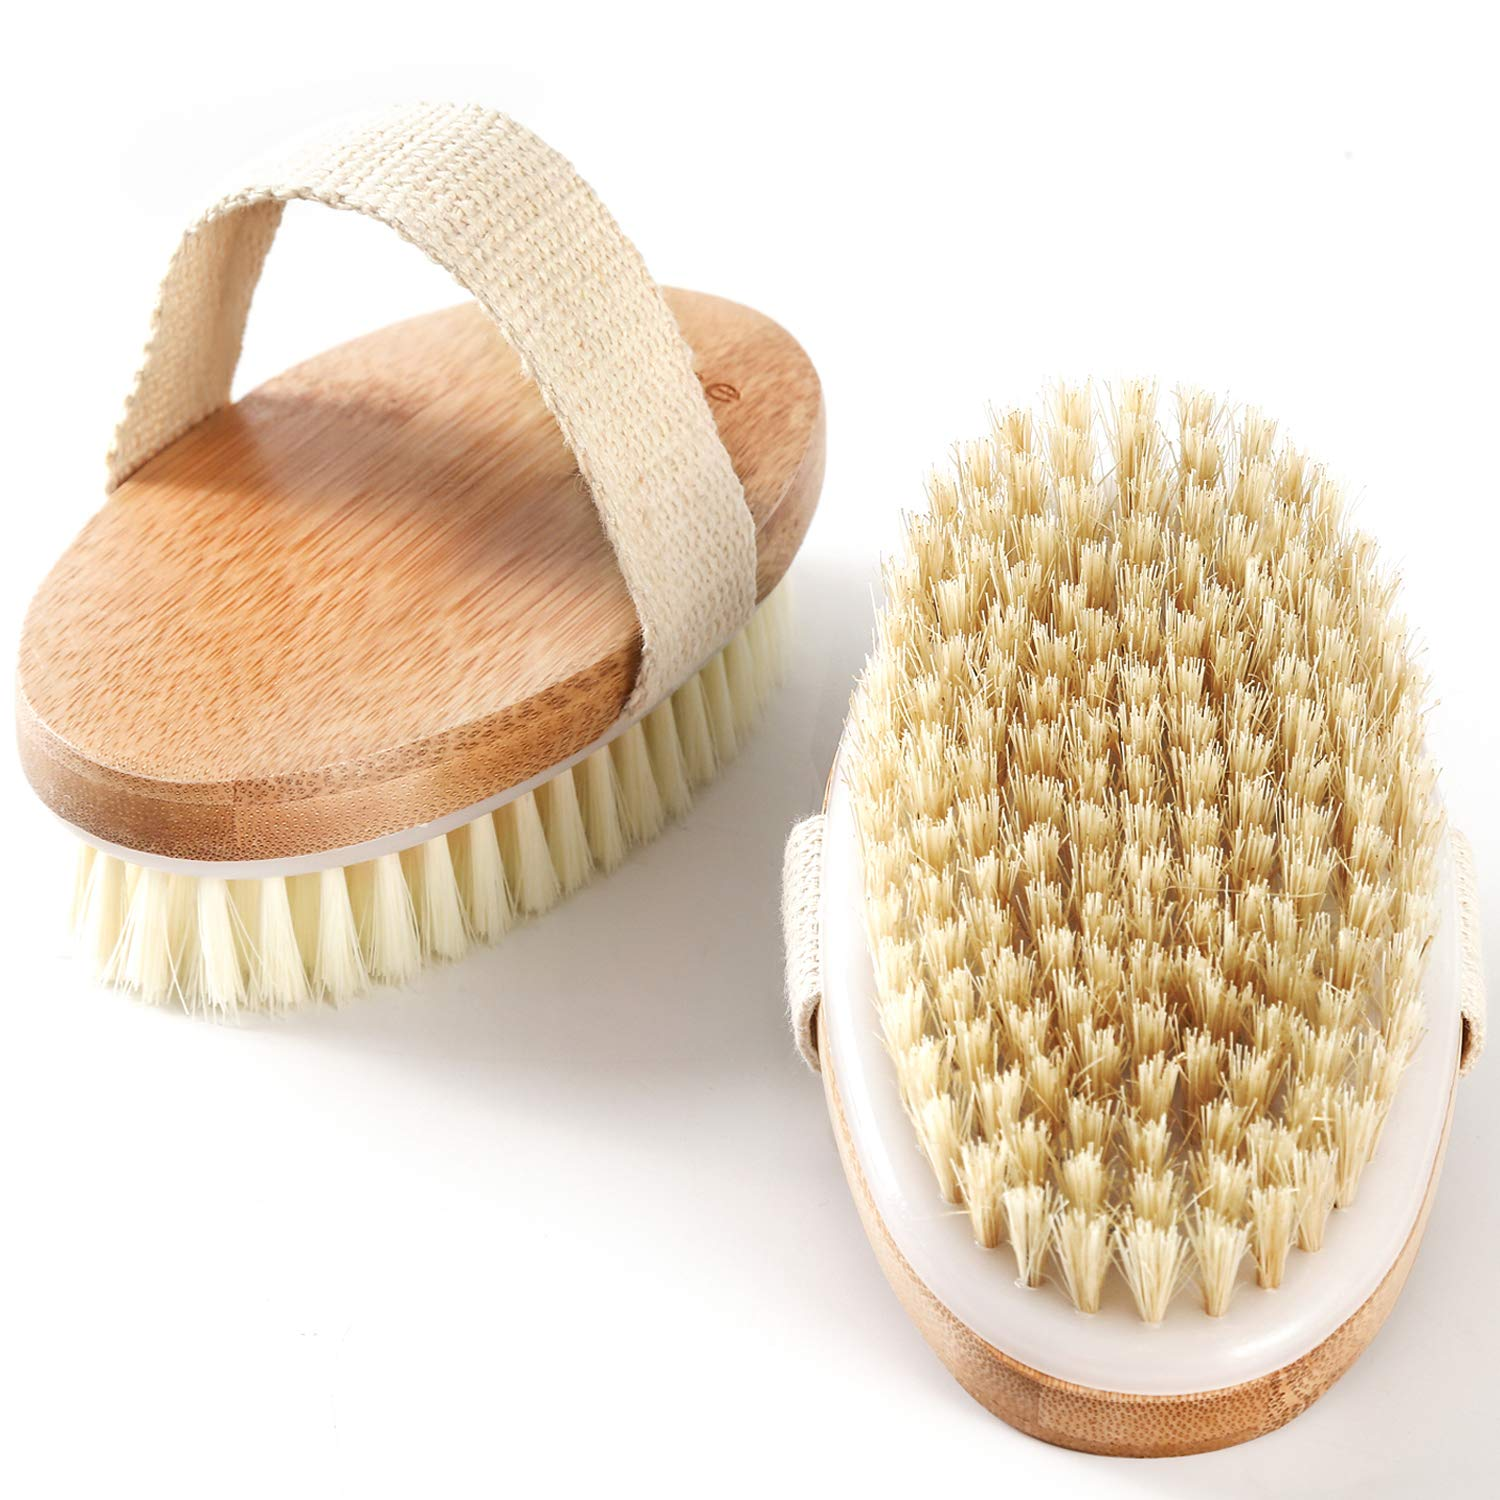 Dry Body Shower Brush, 2 Pack Back Exfoliating Scrubber with Soft and Stiff Bristles, Wet and Dry Bath Brush for Cellulite and Lymphatic, Suitable for Sensitive and All Kinds of Skin